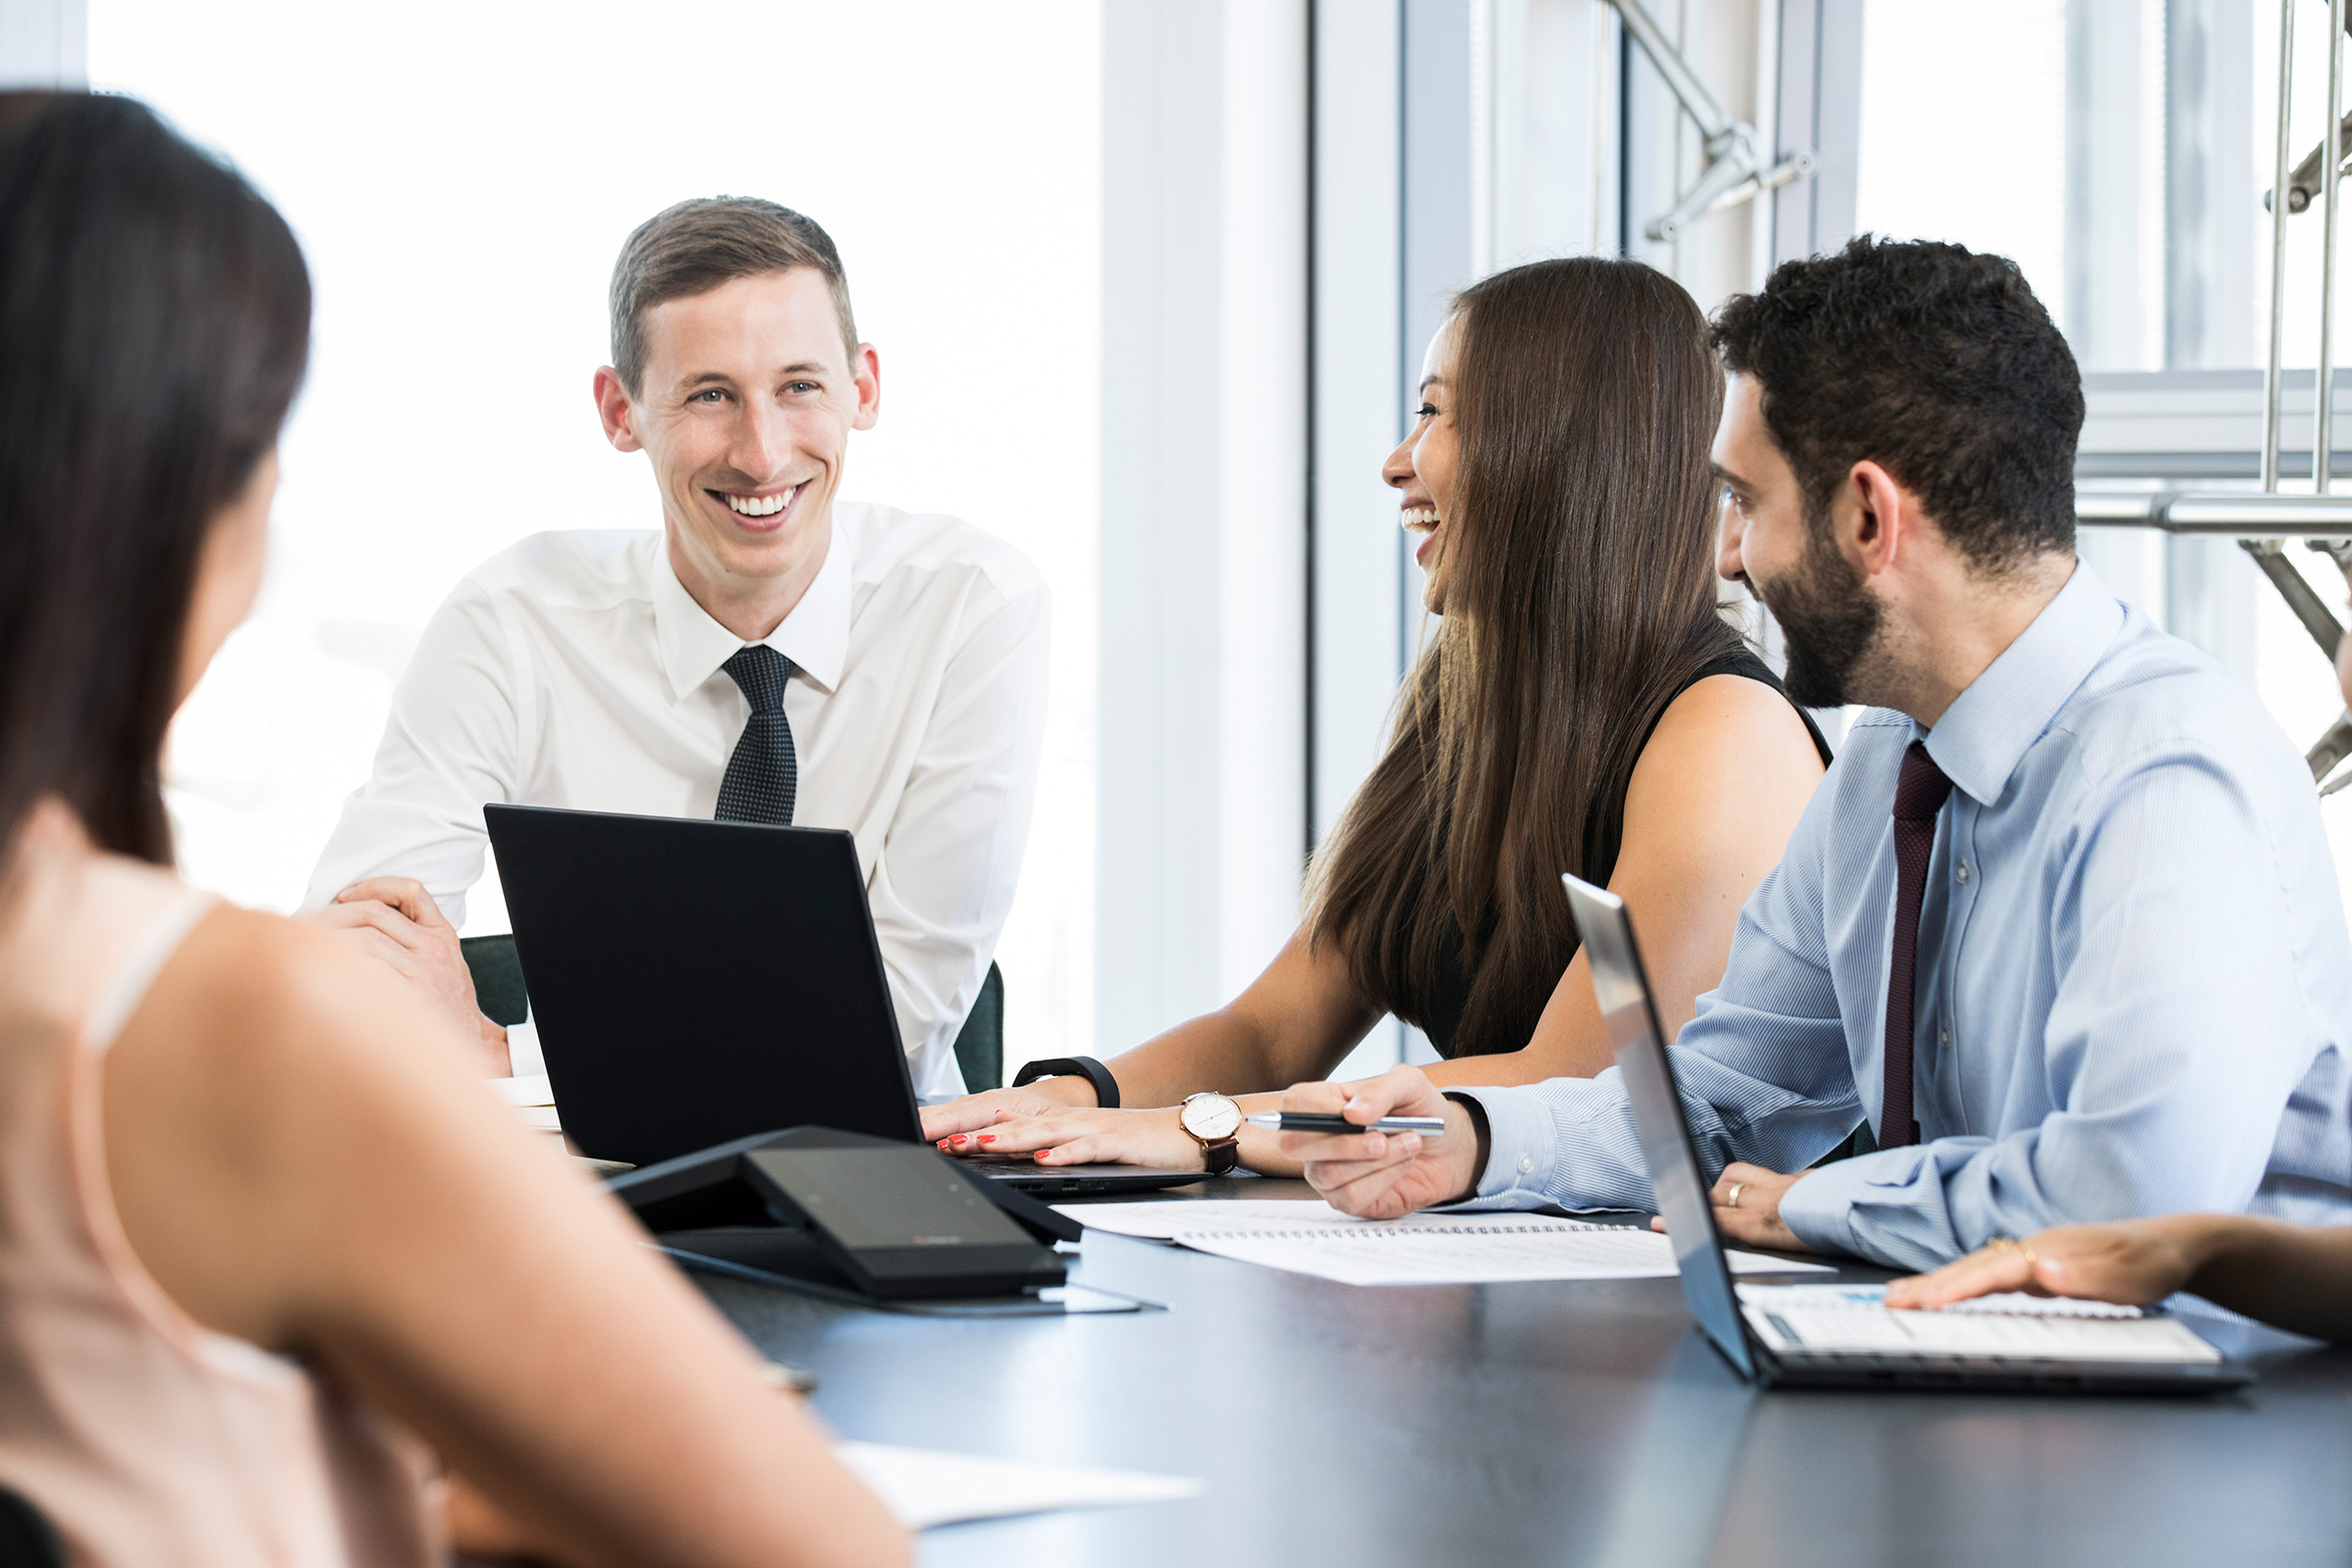 Corporate website working group photography 2 females 2 males seated office background